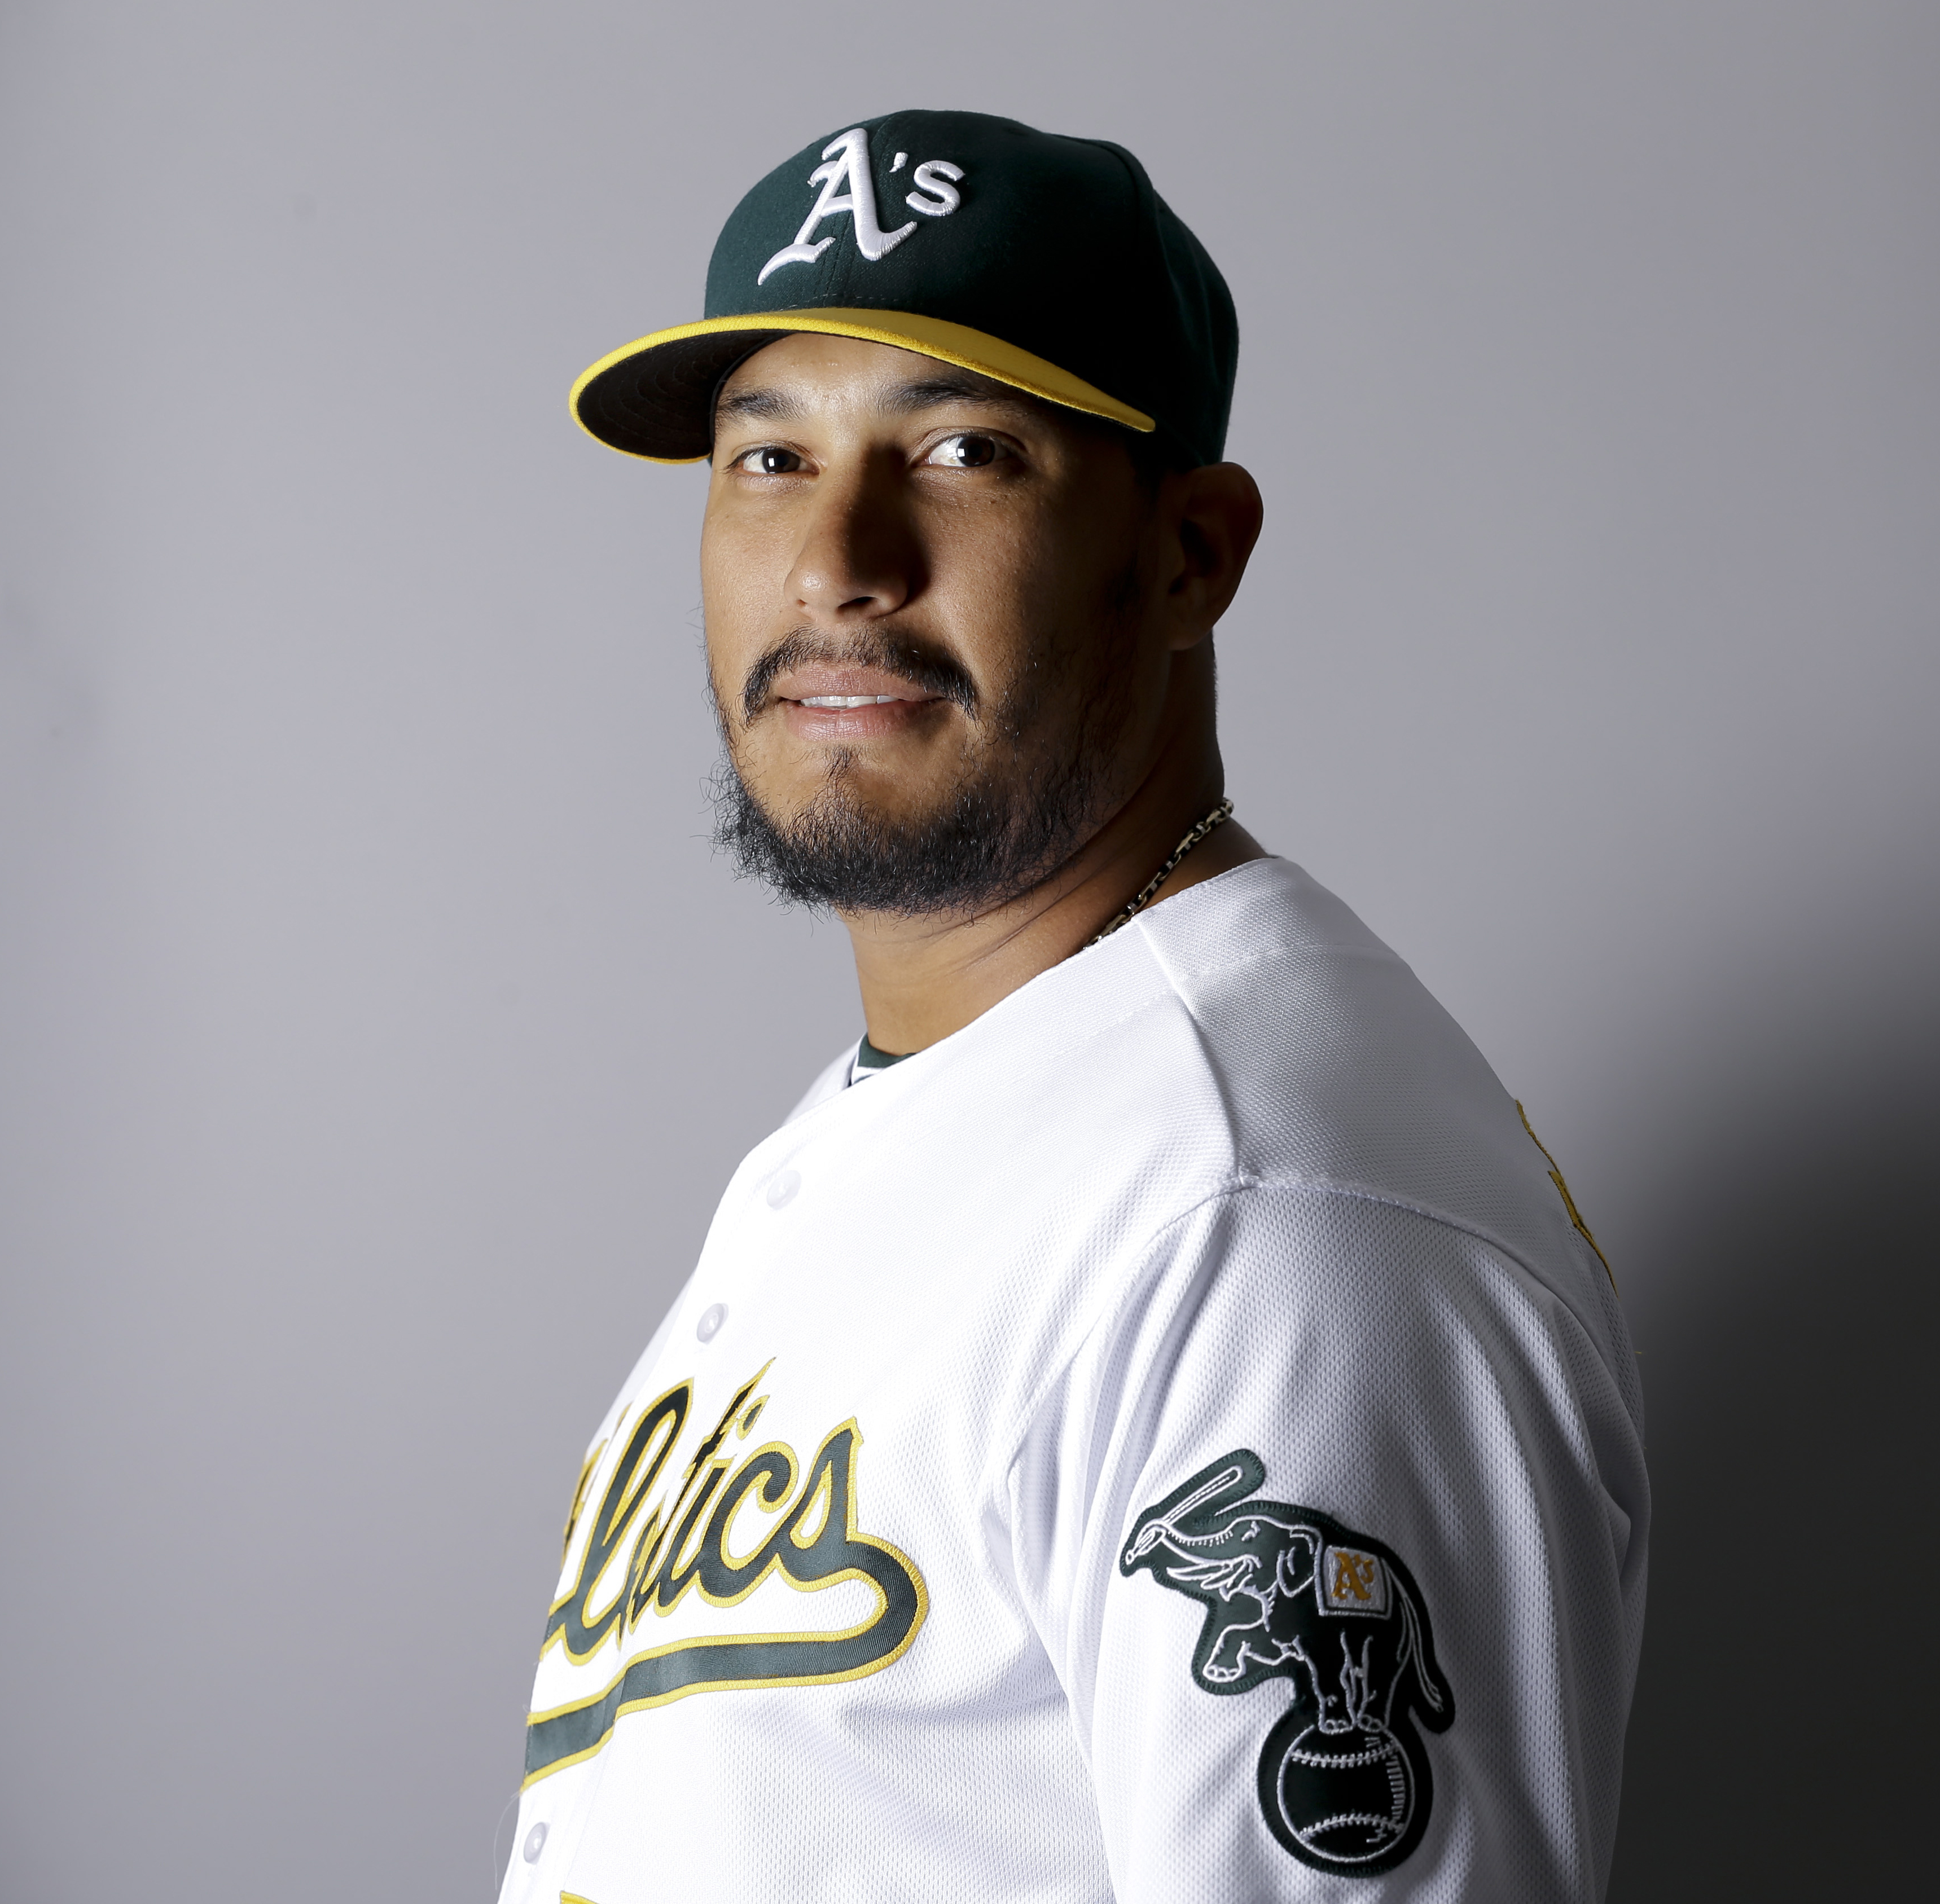 This is a 2016 photo of Felix Doubront of the Oakland Athletics baseball team. Doubront will undergo season-ending elbow surgery, a blow to the Athletics already thin rotation. Doubront was examined by orthopedic surgeon Dr. Timothy Kremchek in Cincinnati